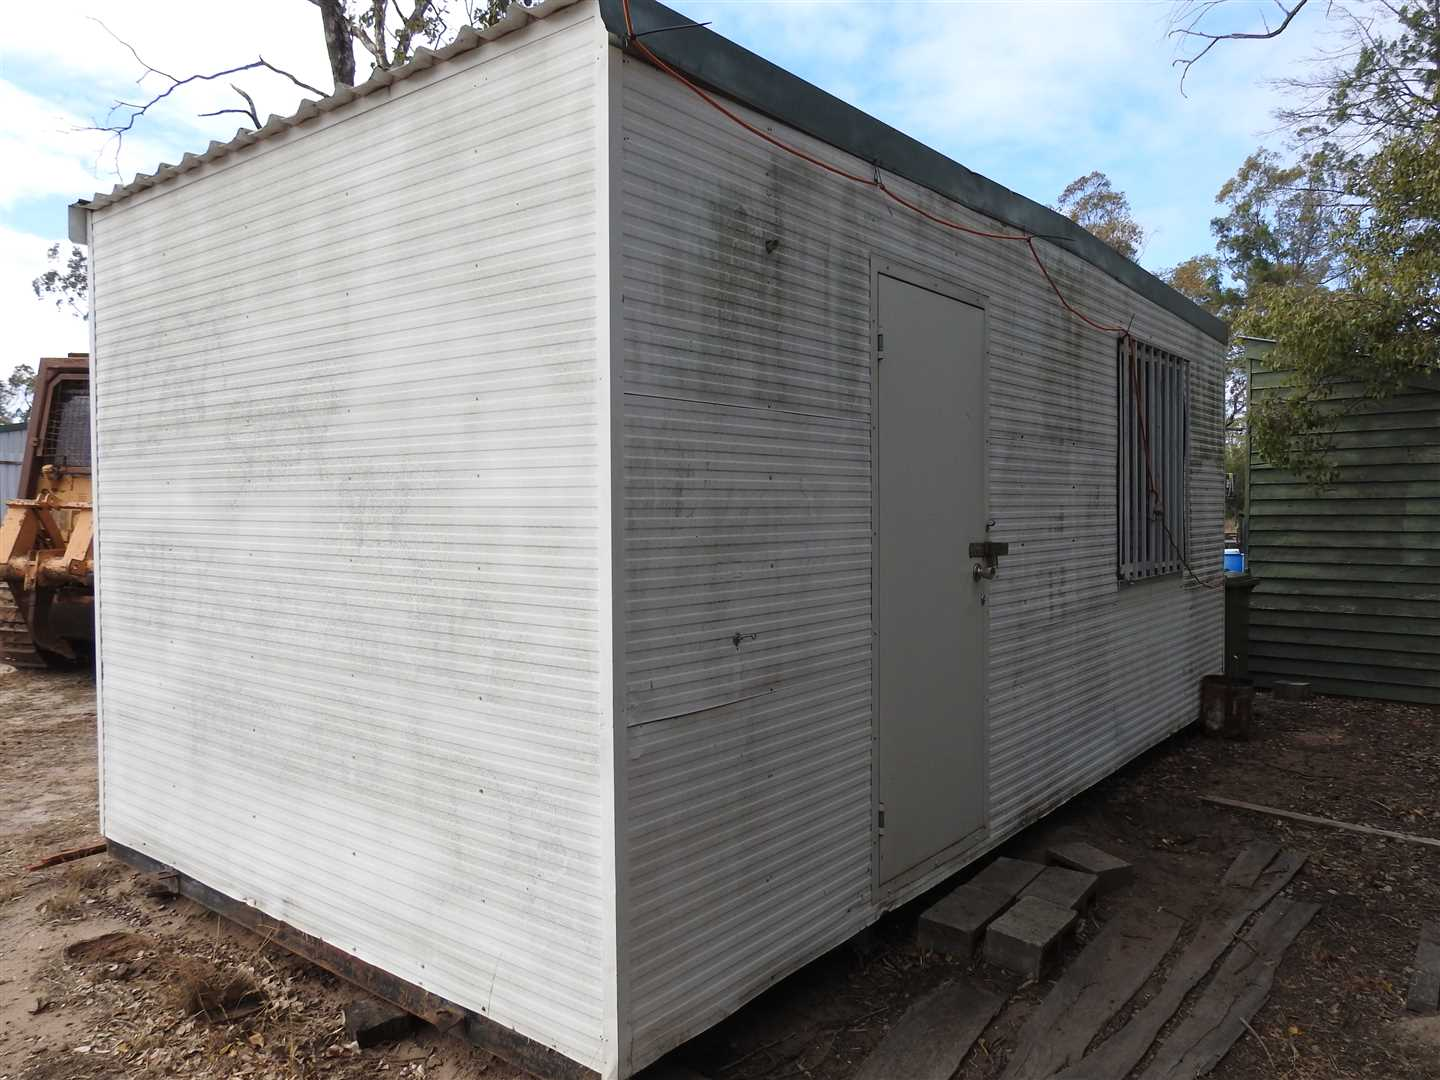 6m x 3m  Donga, single room, two windows, small r/c  a/c one end